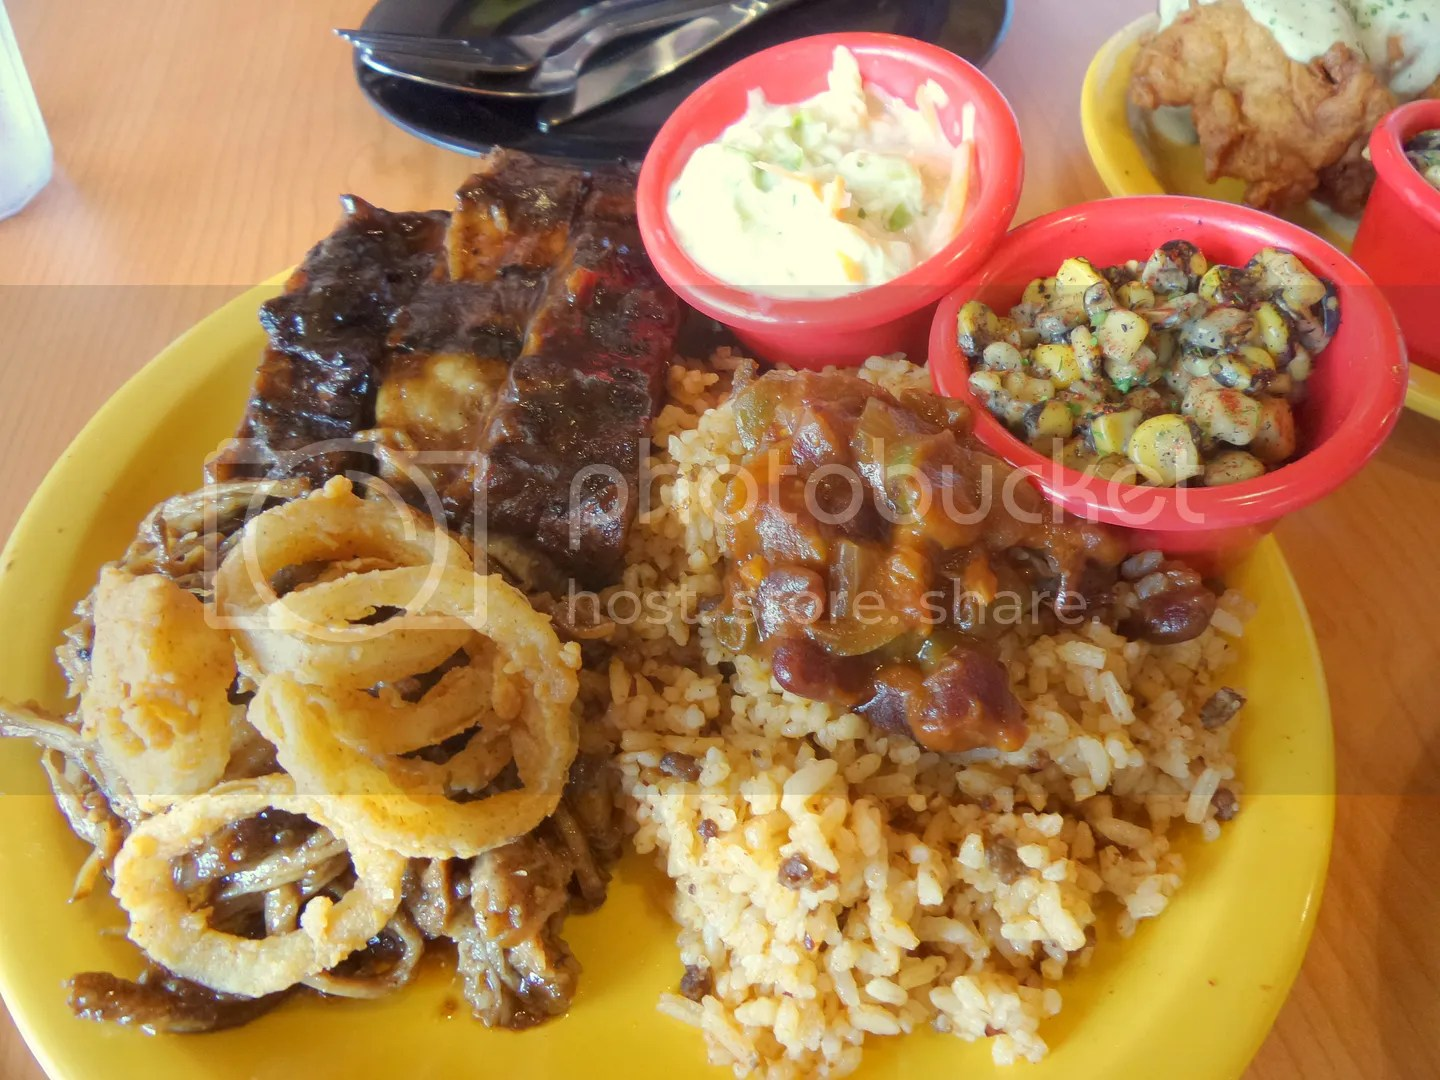 Chubby's Special - 279php. For those not sure whether they'd like the pulled pork or the ribs get this platter! It's a great combination of the two. The best of both dishes!